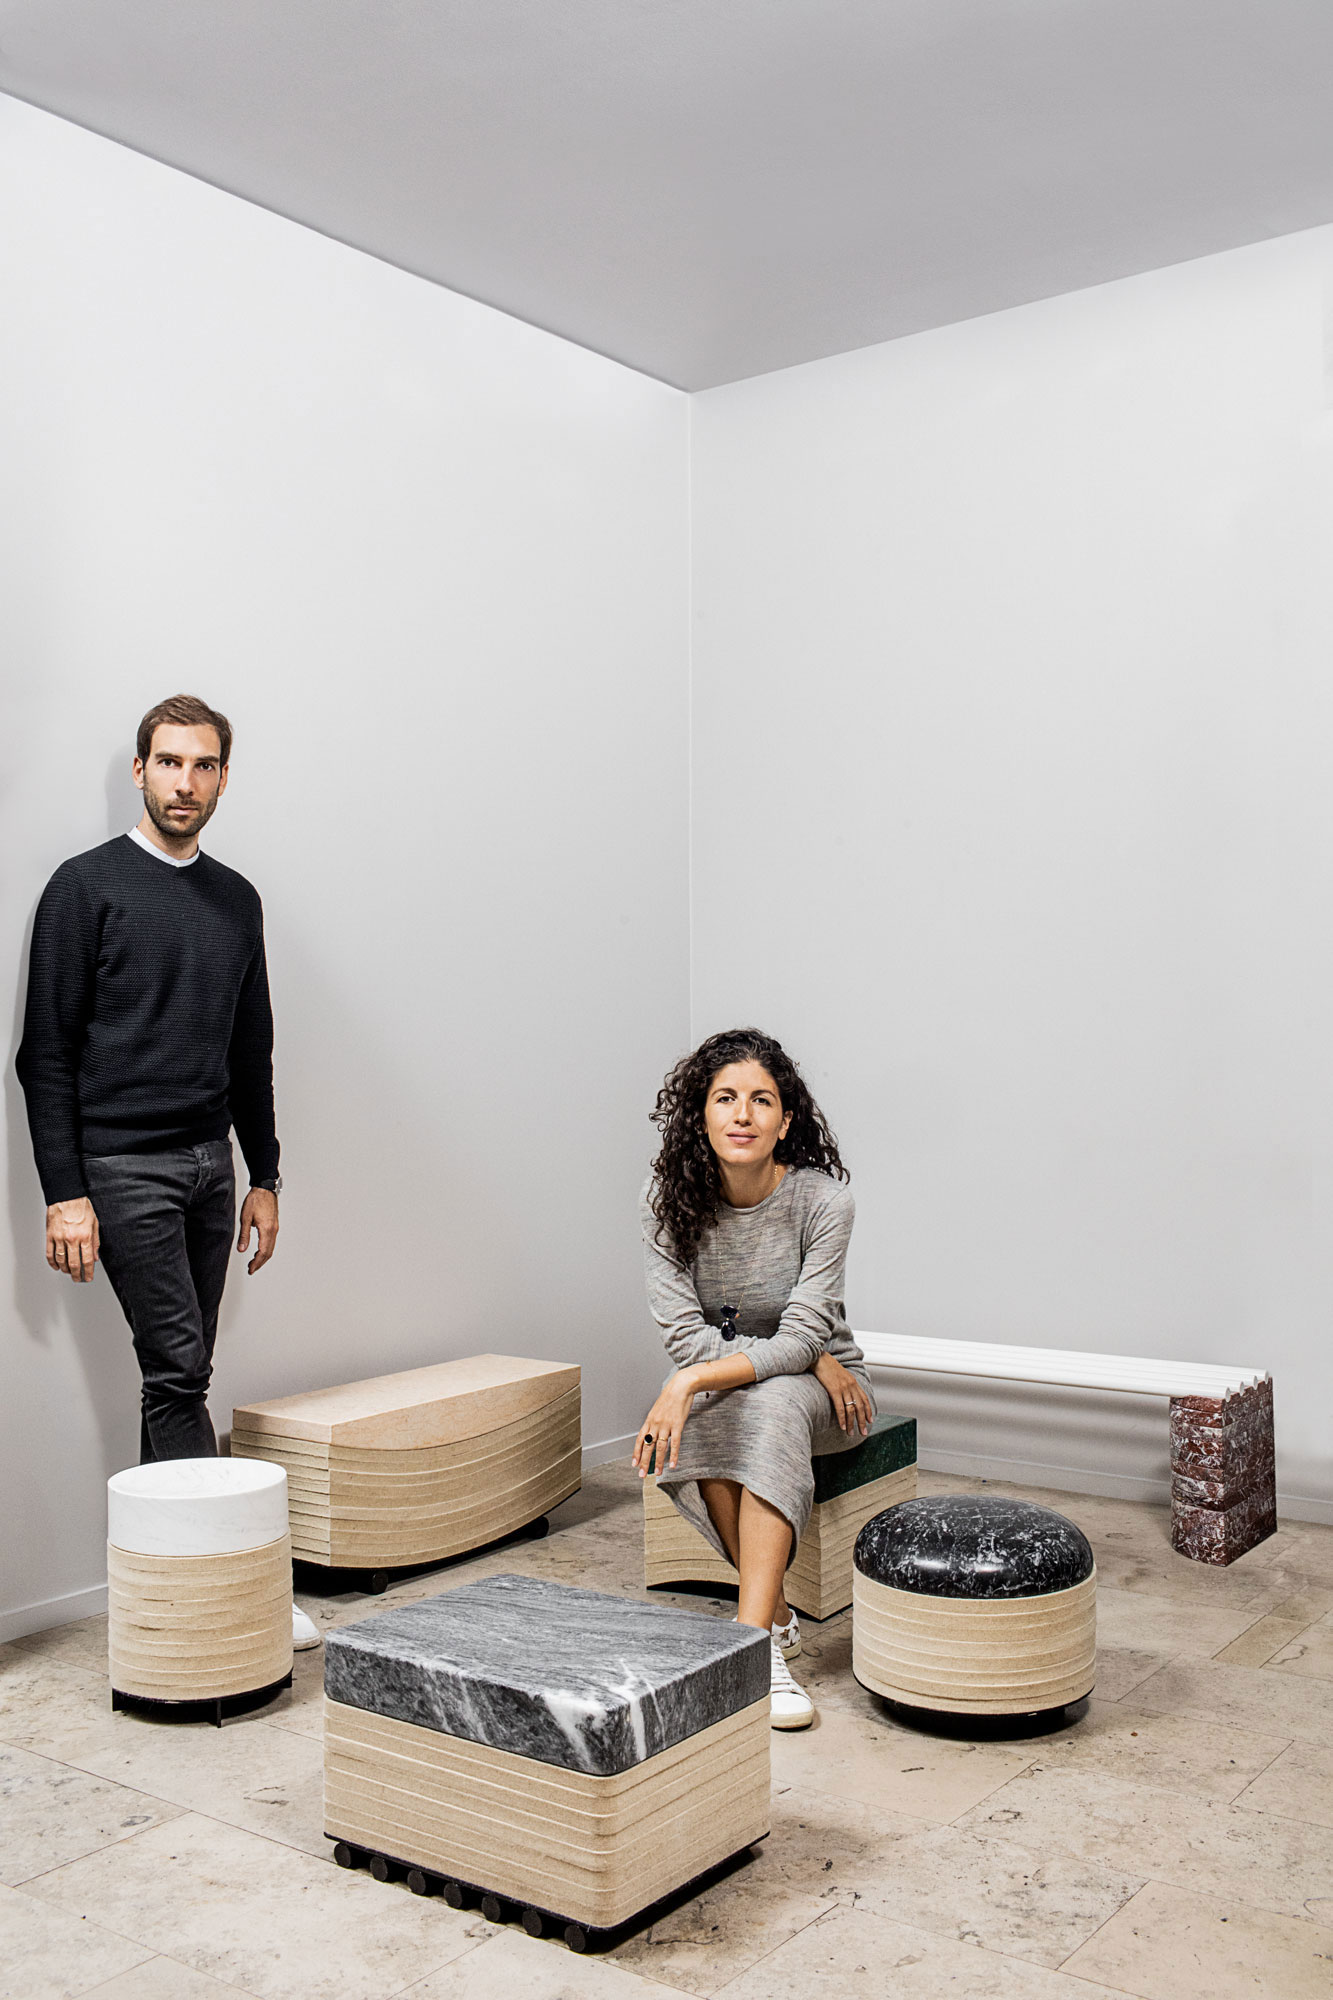 Leonidas Trampoukis & Eleni Petaloti portrait. Photo by Mattheu Salvaing.